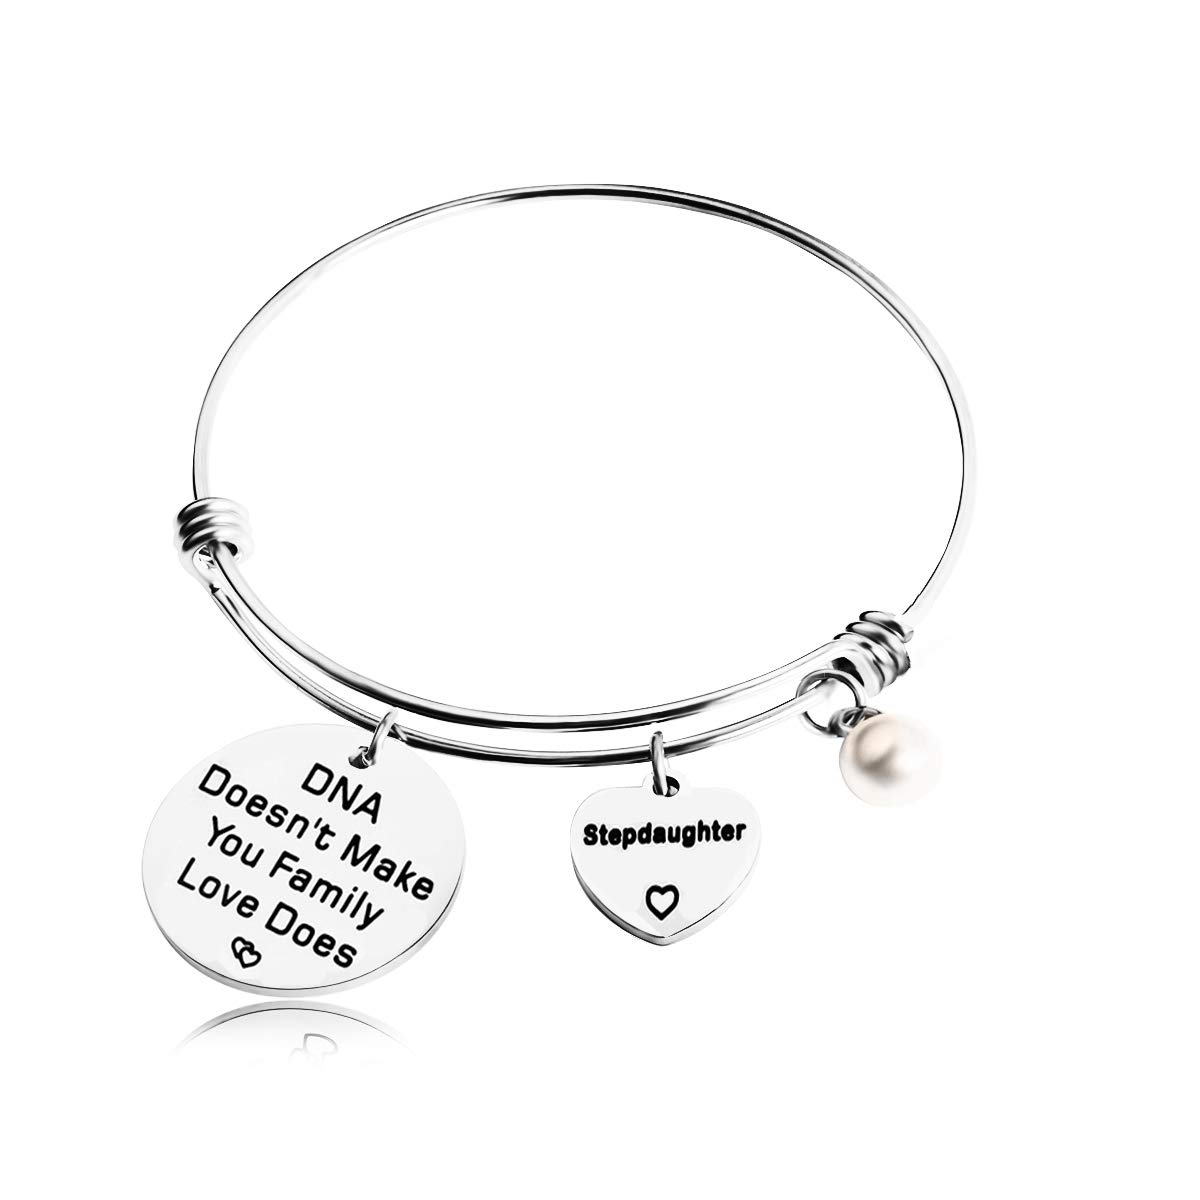 REEBOOOR Stepdaughter Gifts Stepdaughter Bracelet DNA Doesn't Make You Family Love Does Gift for Stepchild (Silver -Stepdaughter Bracelet)